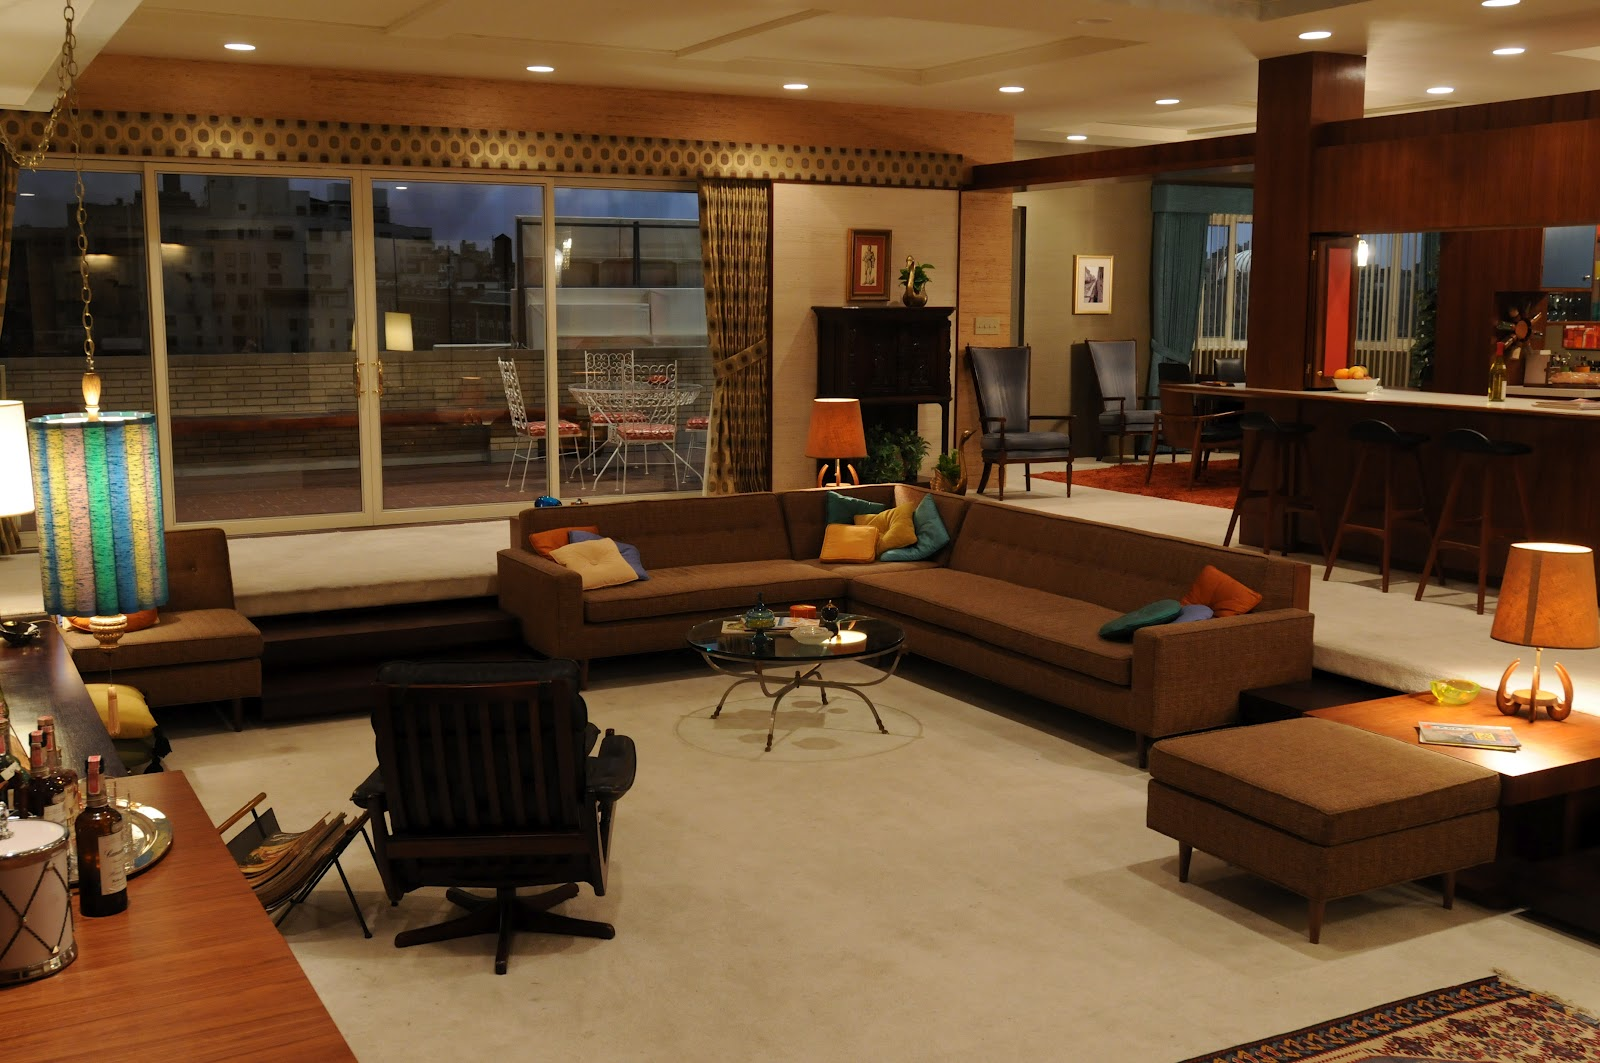 The Well Appointed Catwalk Sunken Living Rooms à La Mad Men